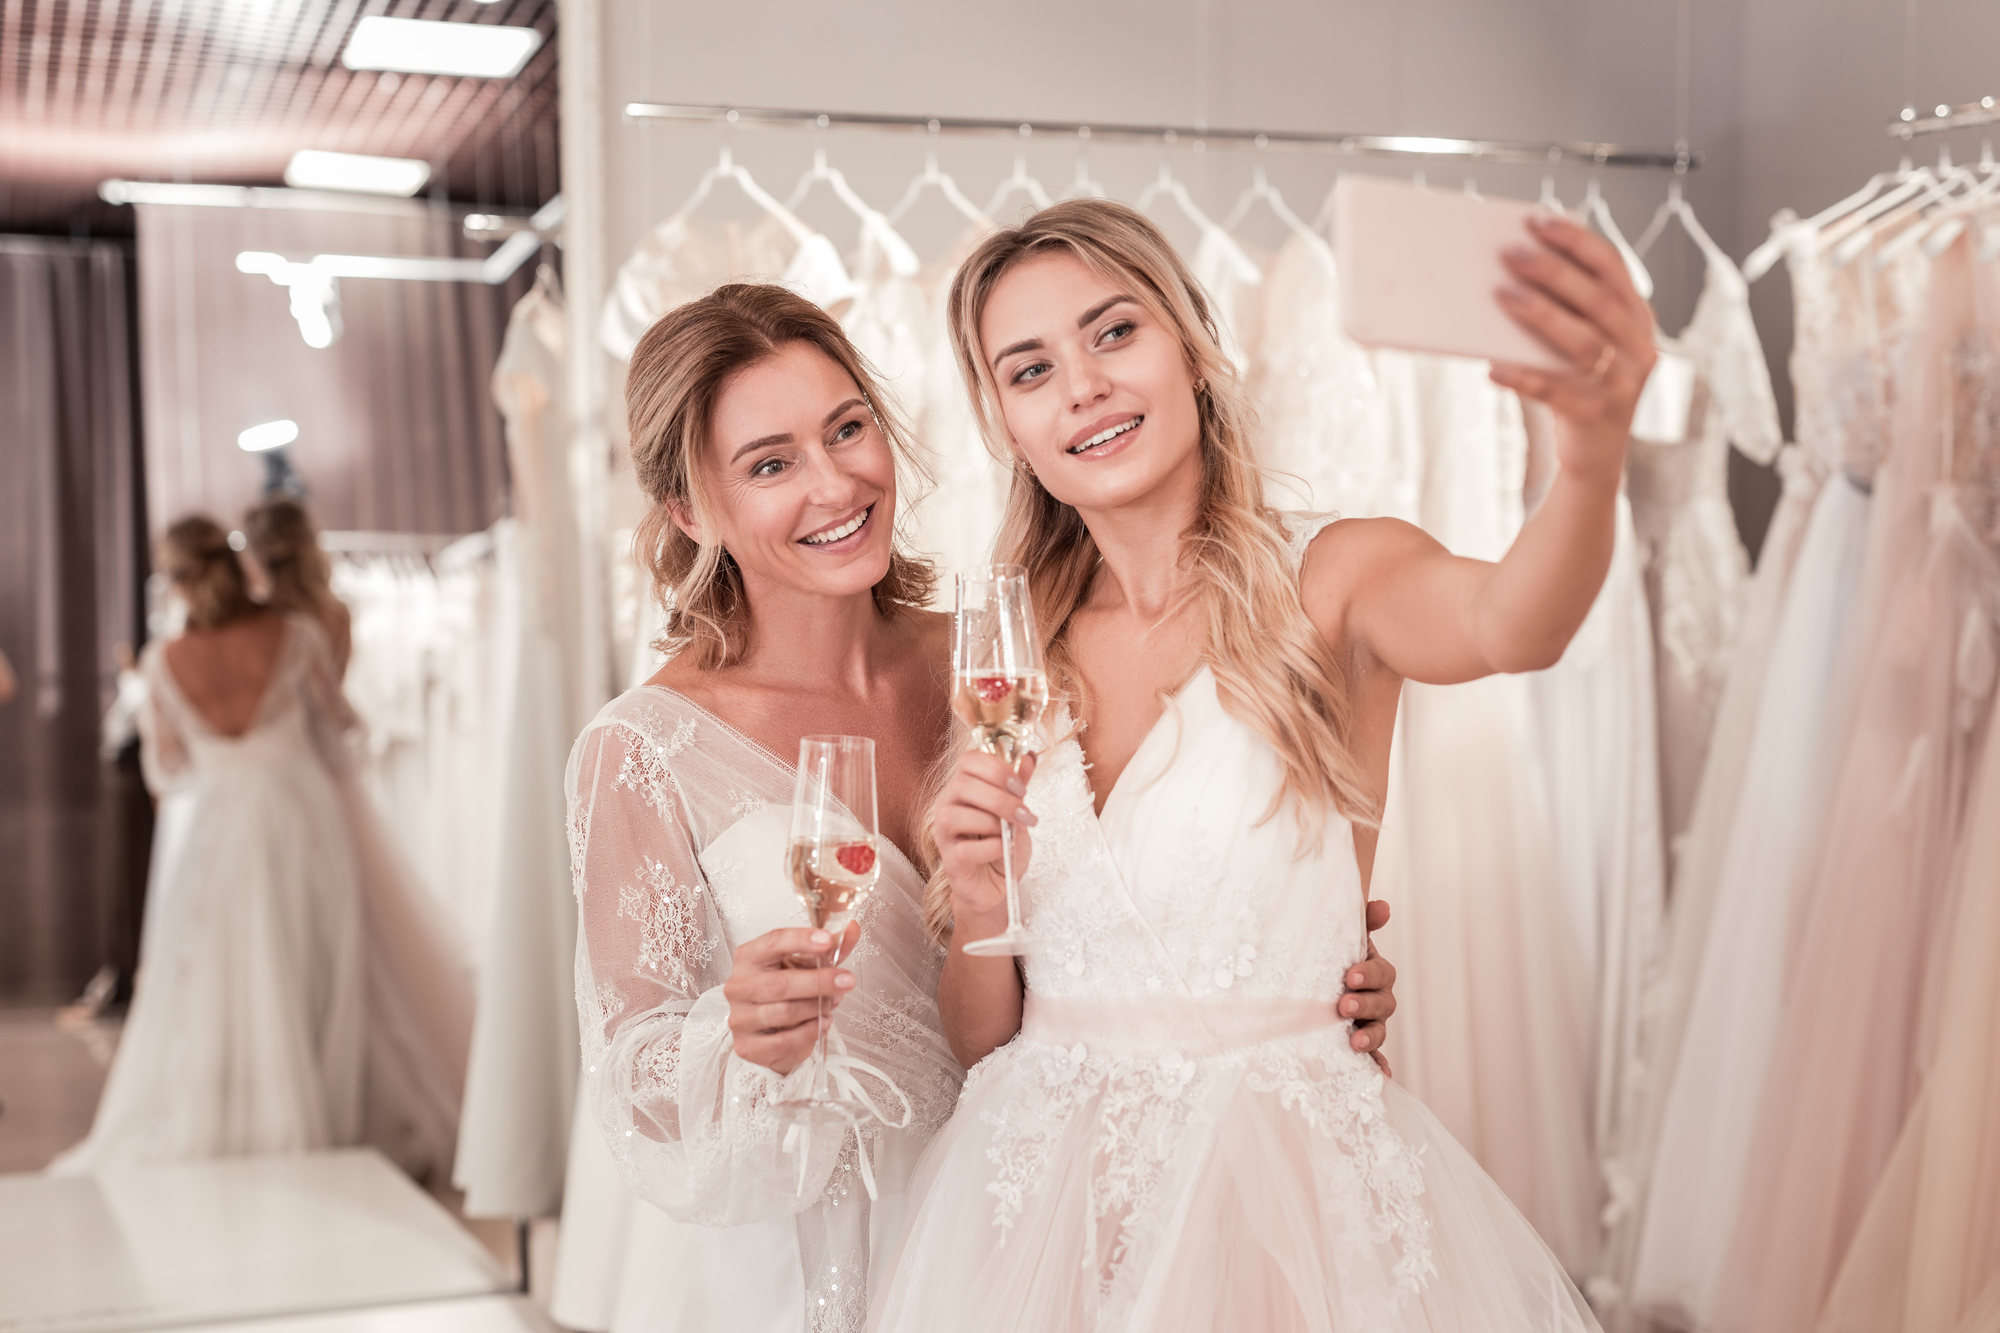 Sample Wedding Dress Shopping at One Love During a Pandemic